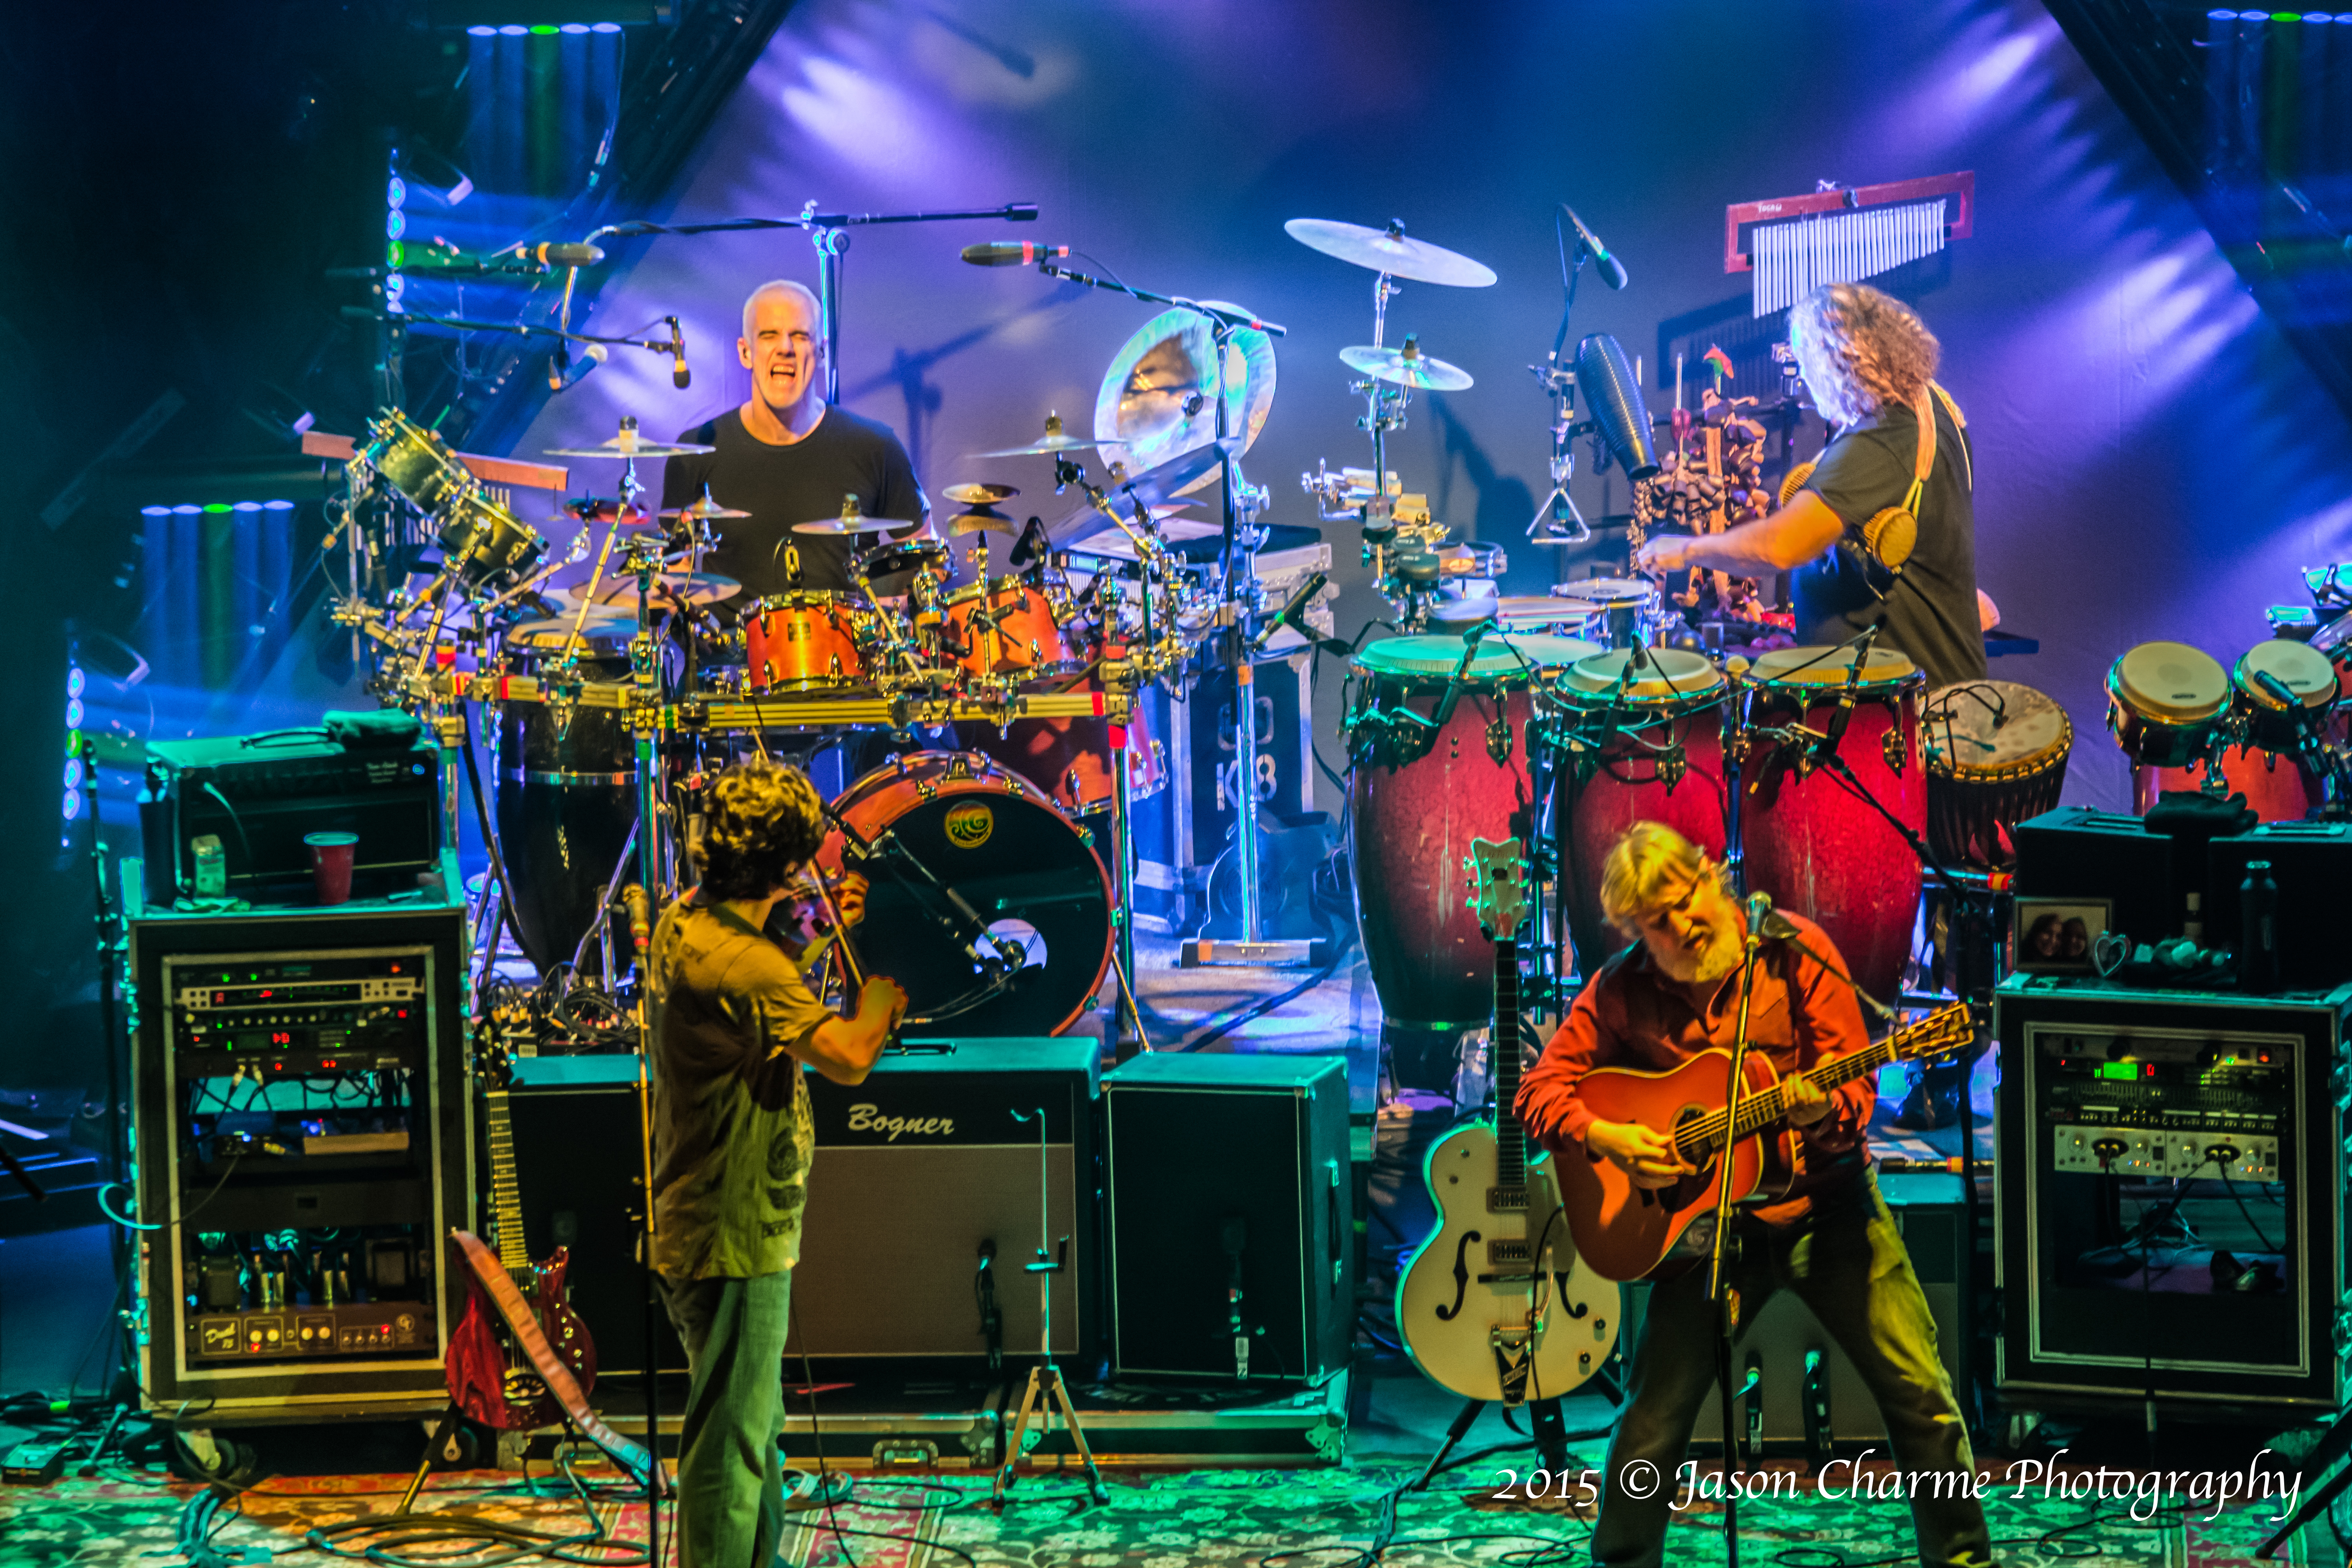 String Cheese Incident End 'Wait' for New Music: Exclusive ...